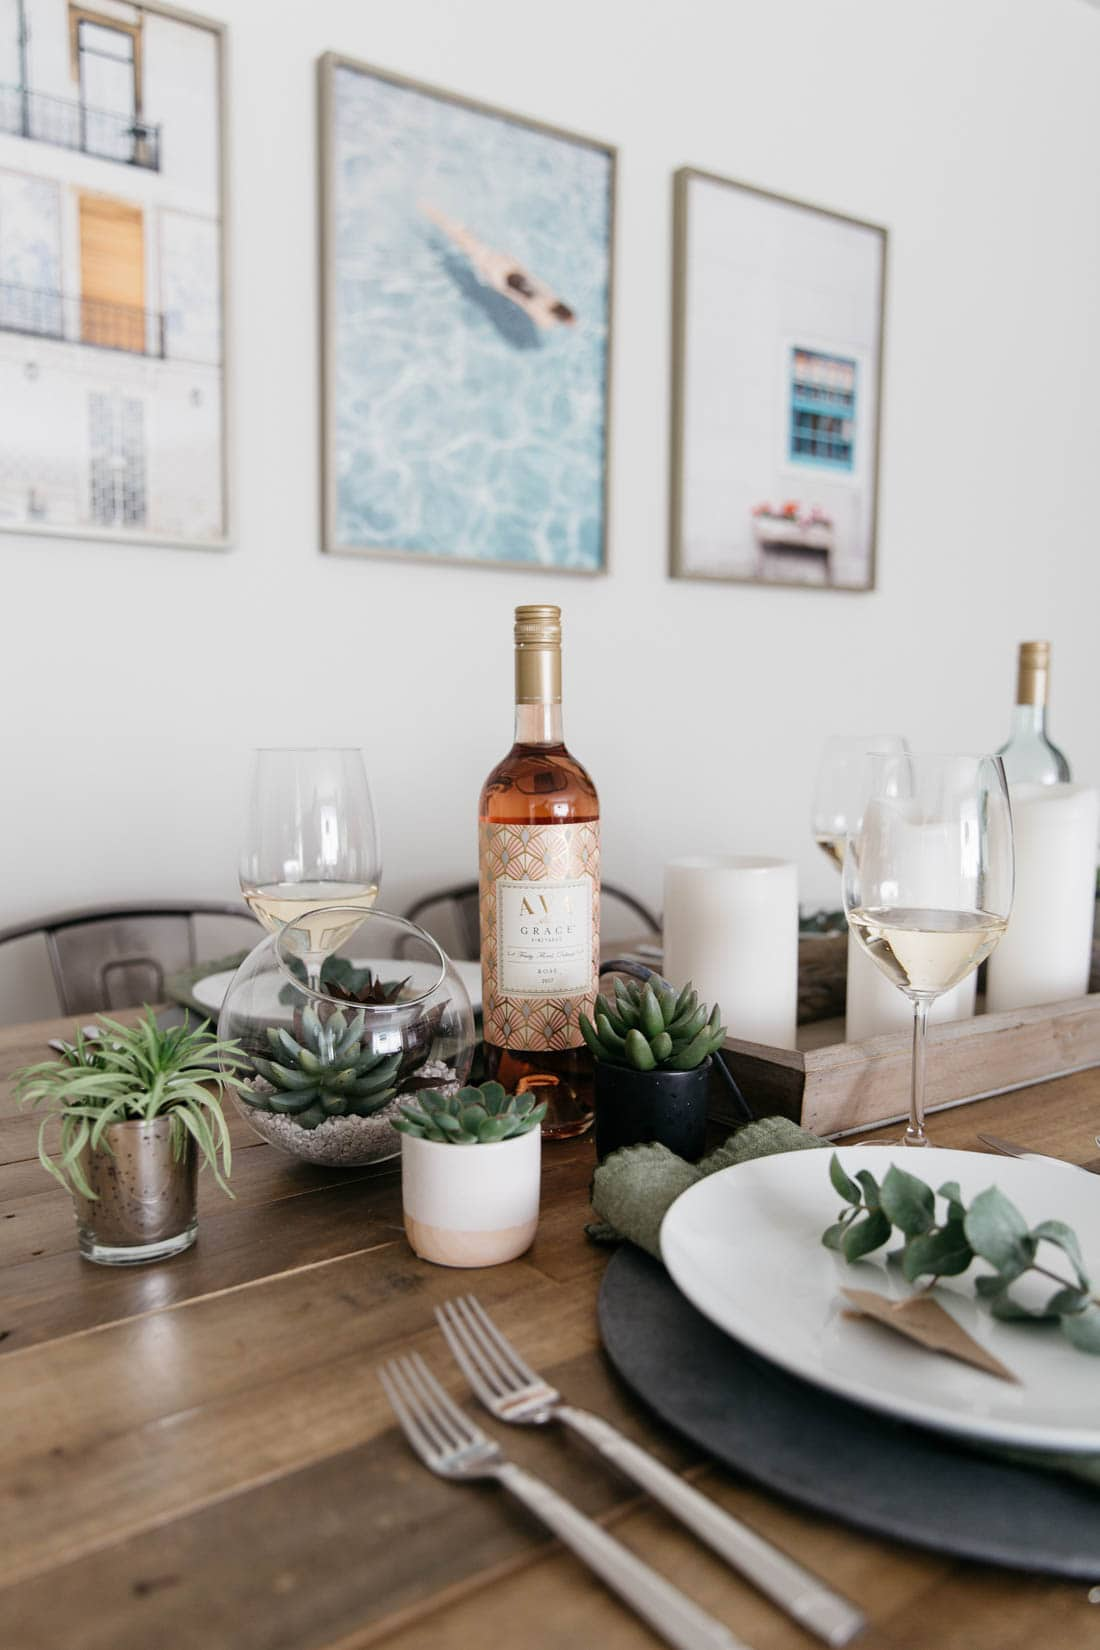 affordable dry rosé